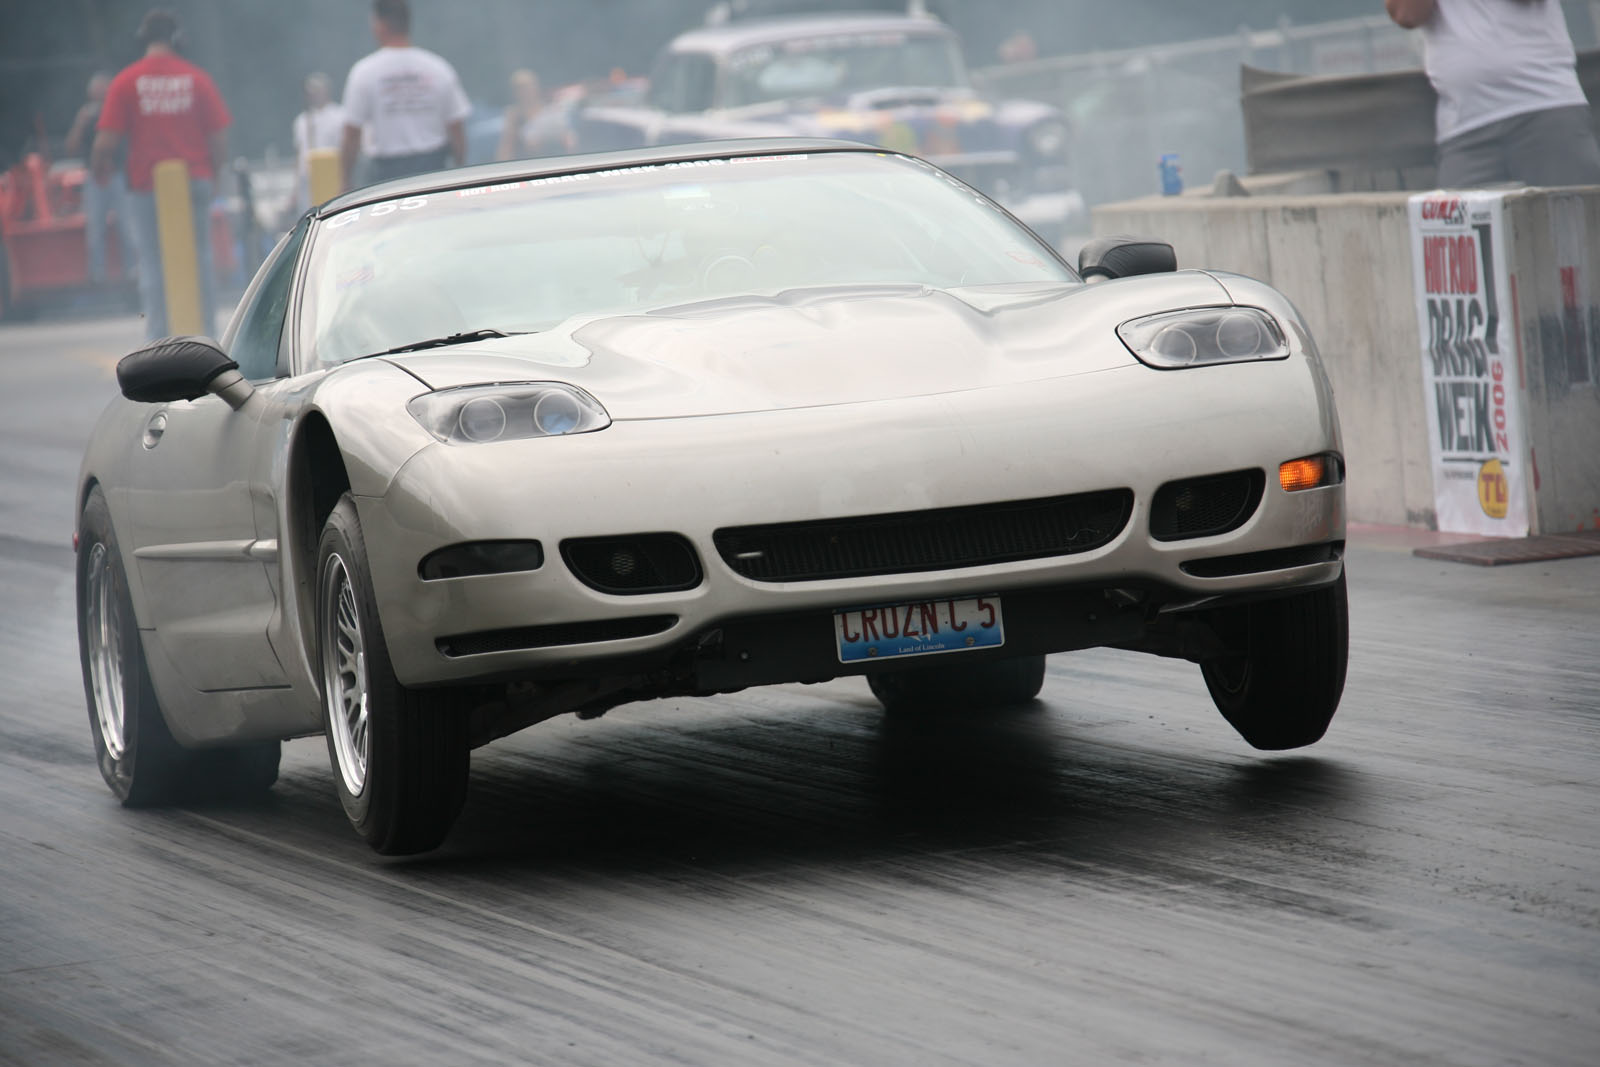 Chevrolet Corvette 2000 photo - 2